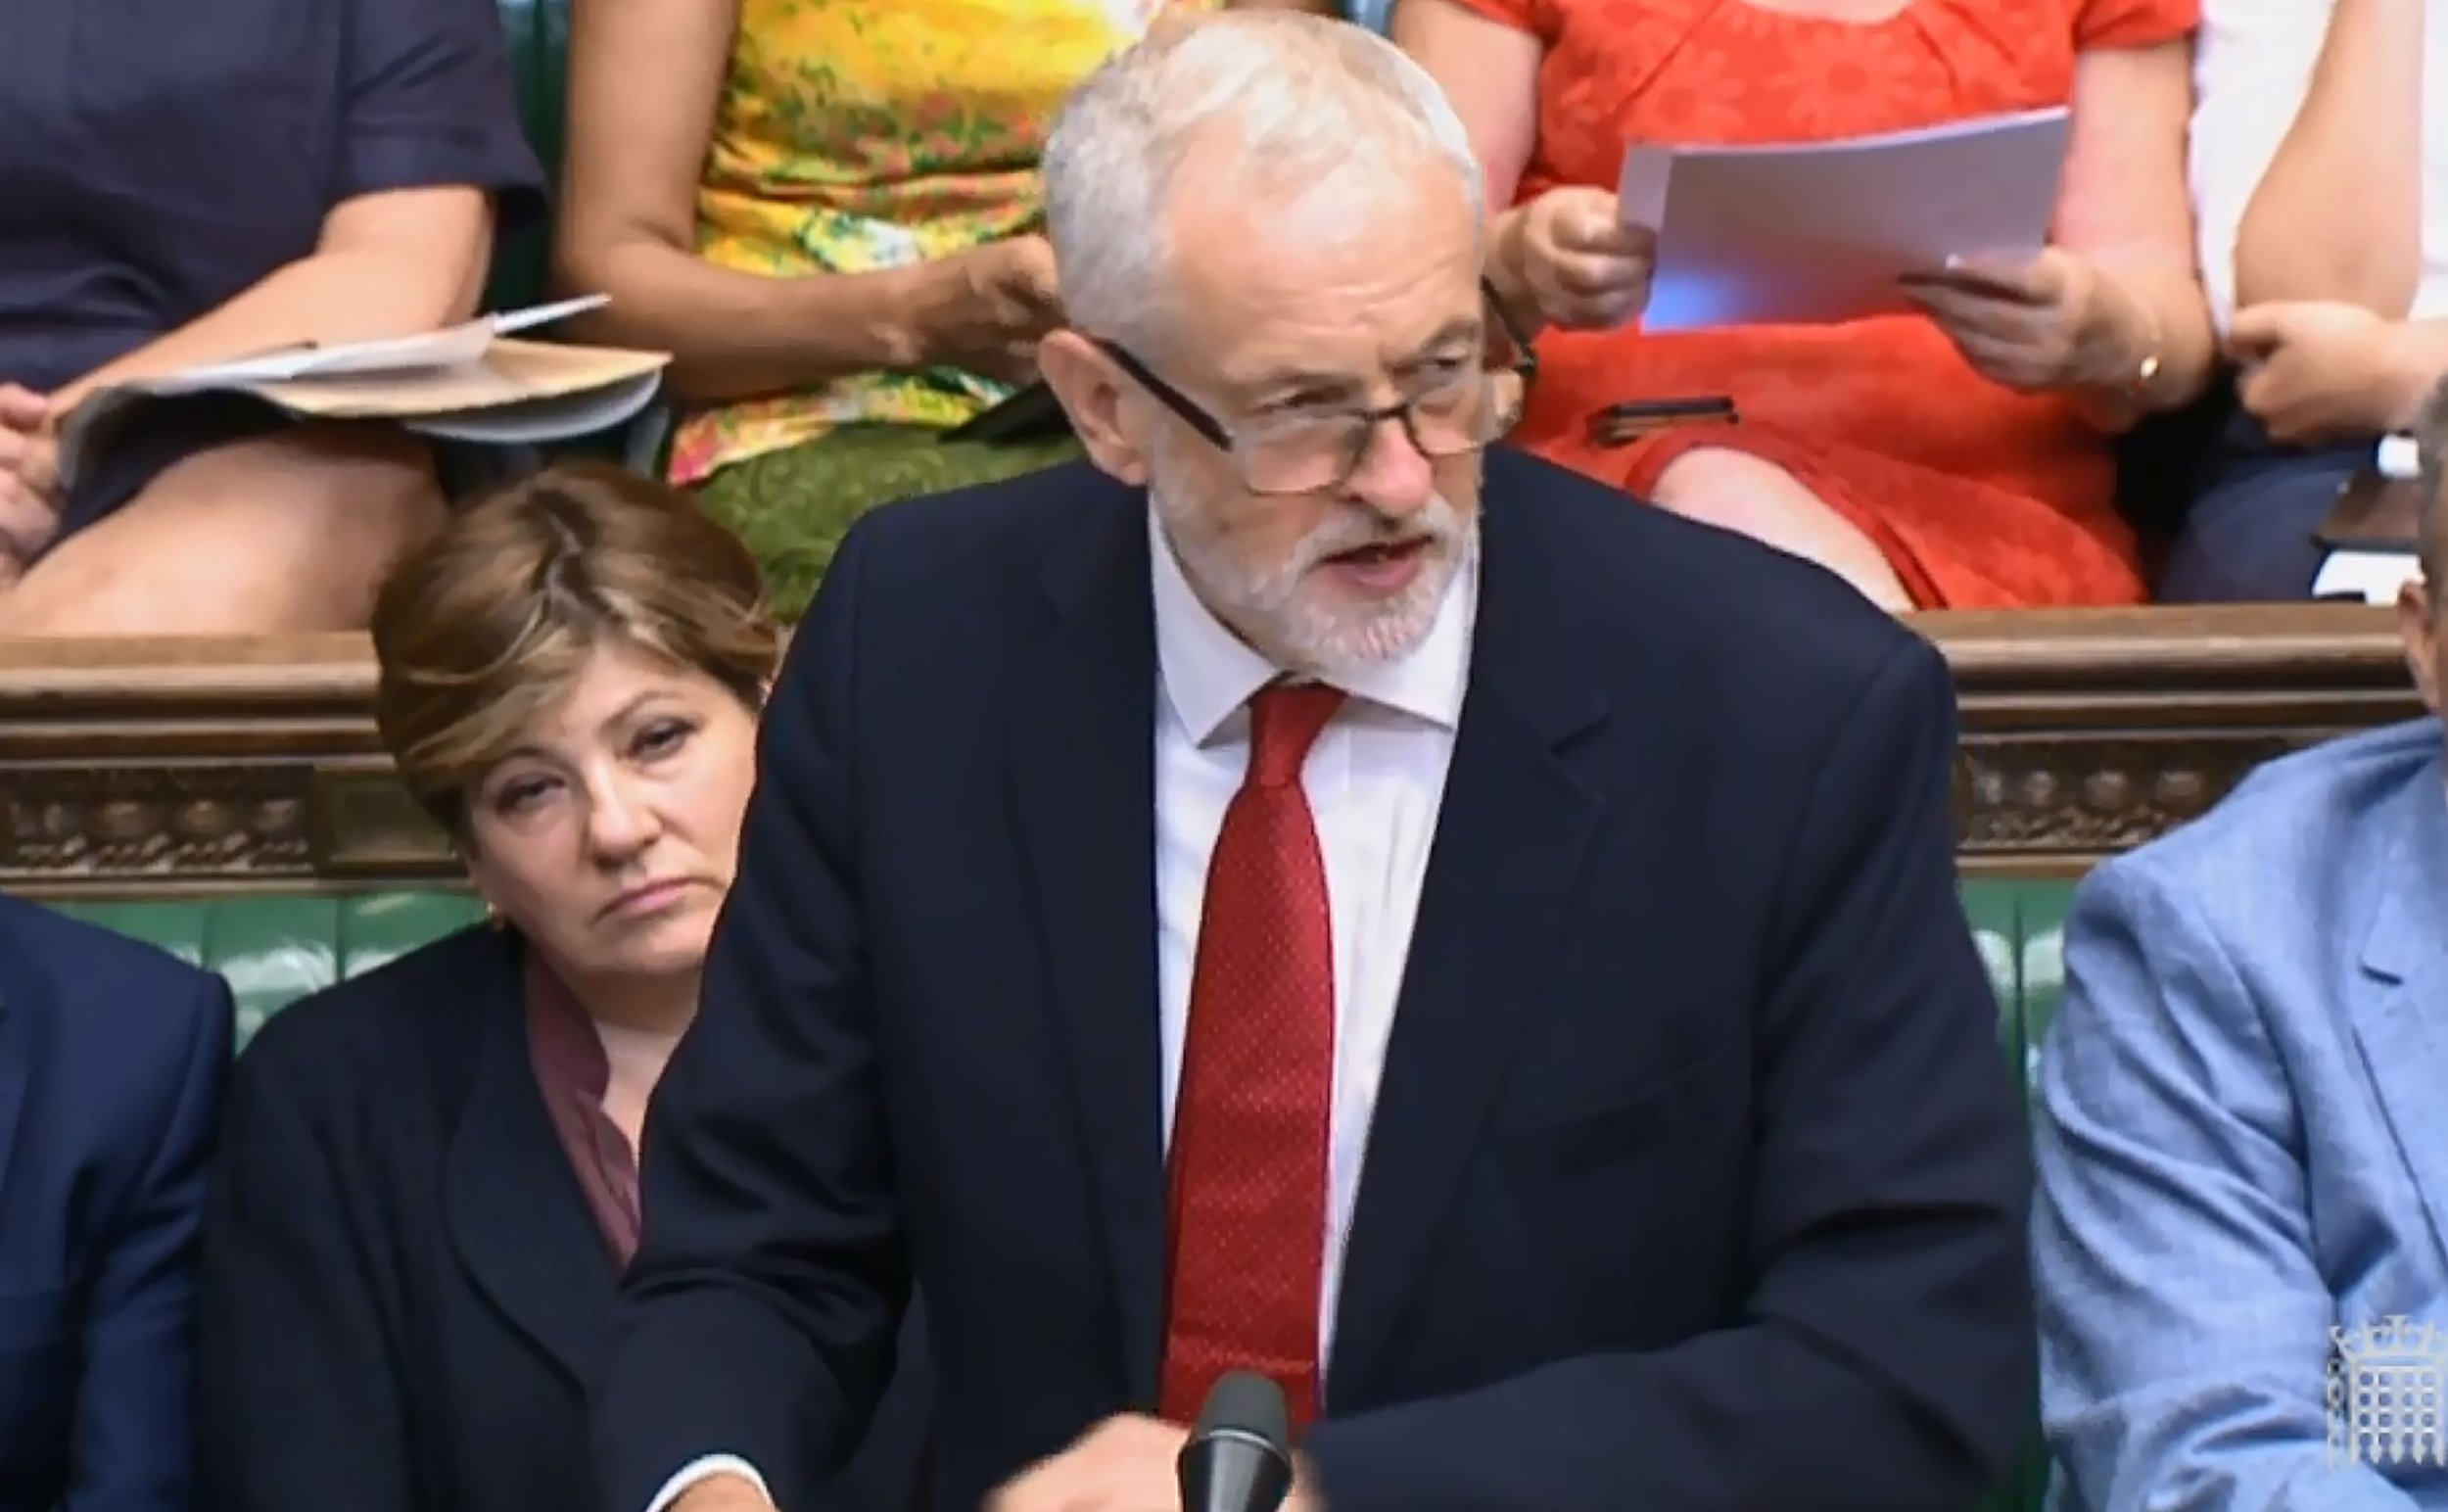 "A combination of video grabs from footage broadcast by the UK Parliament's Parliamentary Recording Unit (PRU) shows Britain's main opposition Labour party leader Jeremy Corbyn responded to the prime minister's statement on Brexit in the House of Commons in London on July 9, 2018. British Prime Minister Theresa May's government imploded on July 9 as Foreign Secretary Boris Johnson followed Brexit minister David Davis out the exit door over her masterplan for Britain's future outside the EU. / AFP PHOTO / PRU / HO / RESTRICTED TO EDITORIAL USE - NO USE FOR ENTERTAINMENT, SATIRICAL, ADVERTISING PURPOSES - MANDATORY CREDIT "" AFP PHOTO / PRU ""HO/AFP/Getty Images"